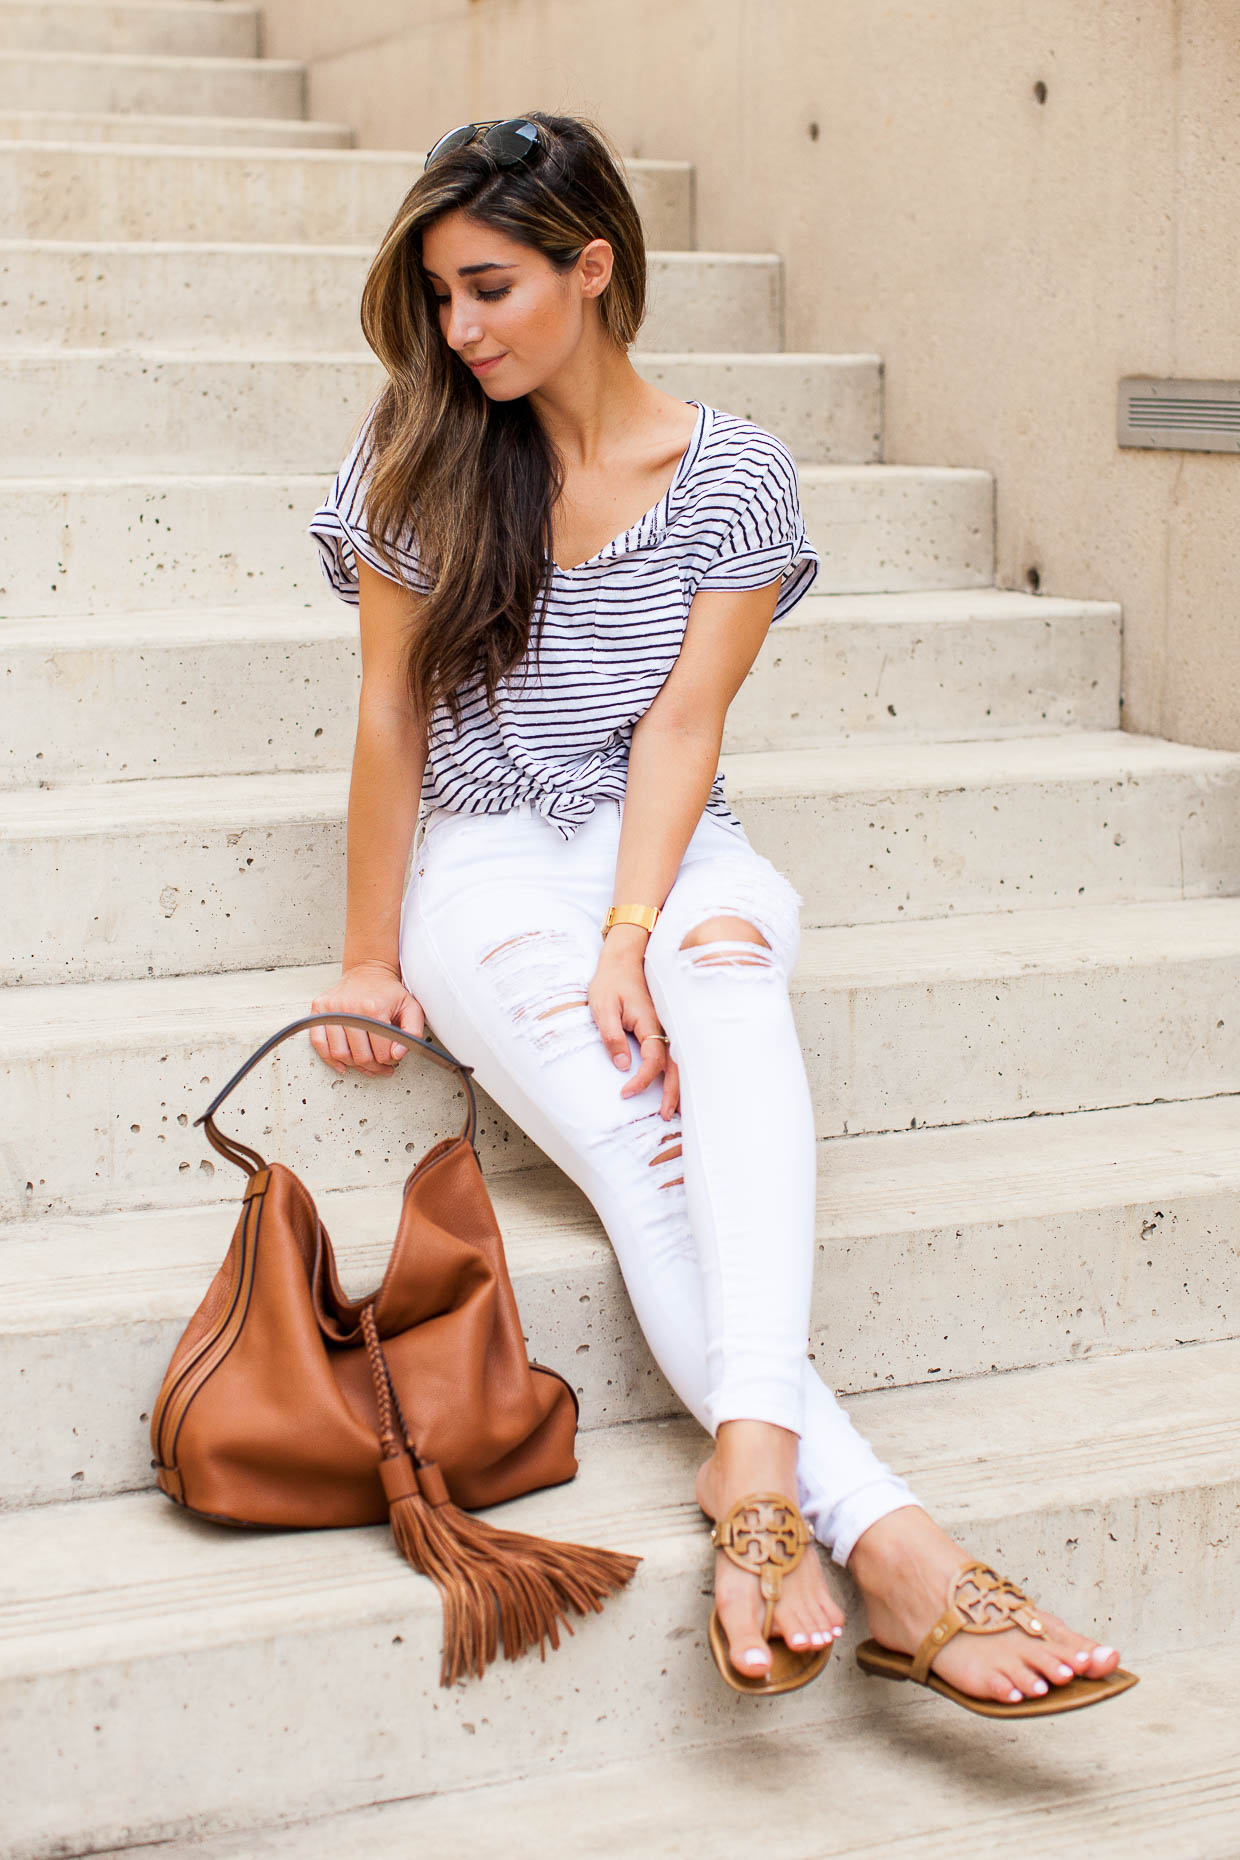 344aa28f6589 ... The Darling Detail wearing Stem Split Neck Tee and FRAME  Le Color   Skinny Jeans with Rebecca Minkoff Isobel Hobo and Tory Burch  Miller  Flip  Flops and ...